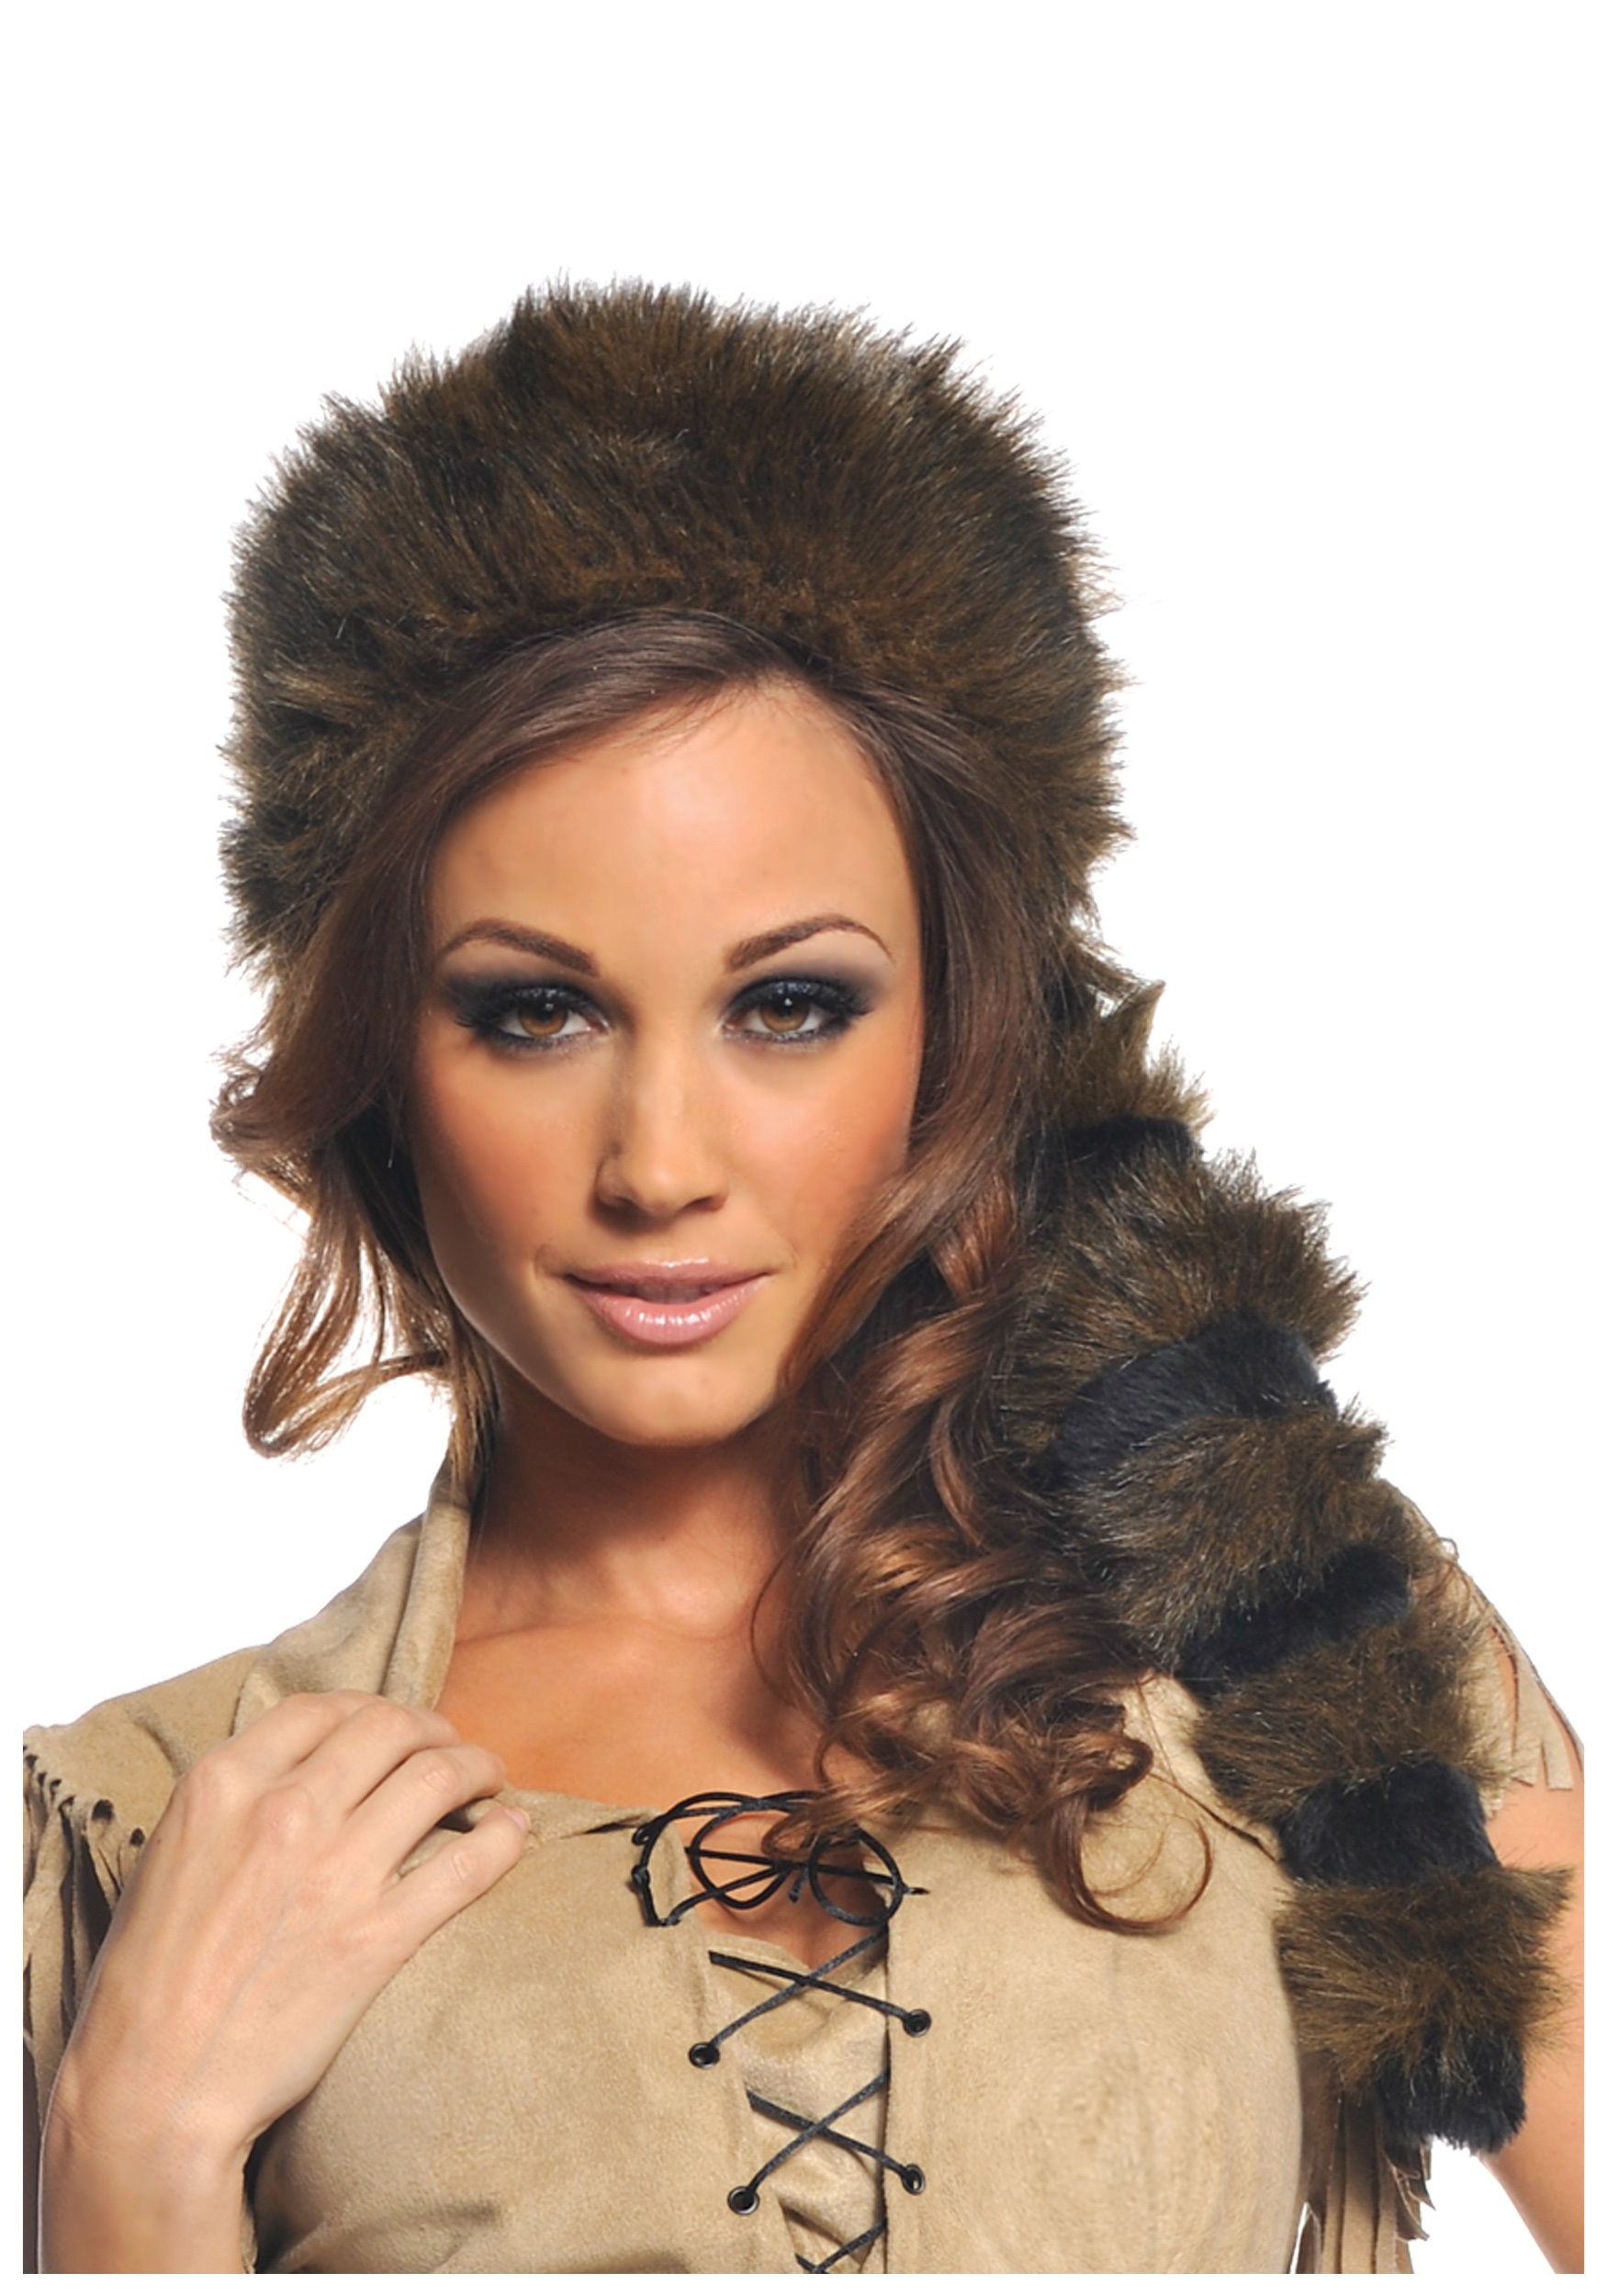 be99f9d4e89 Colonial Frontier Raccoon Tail Hat - Historical Coonskin Cap Accessory